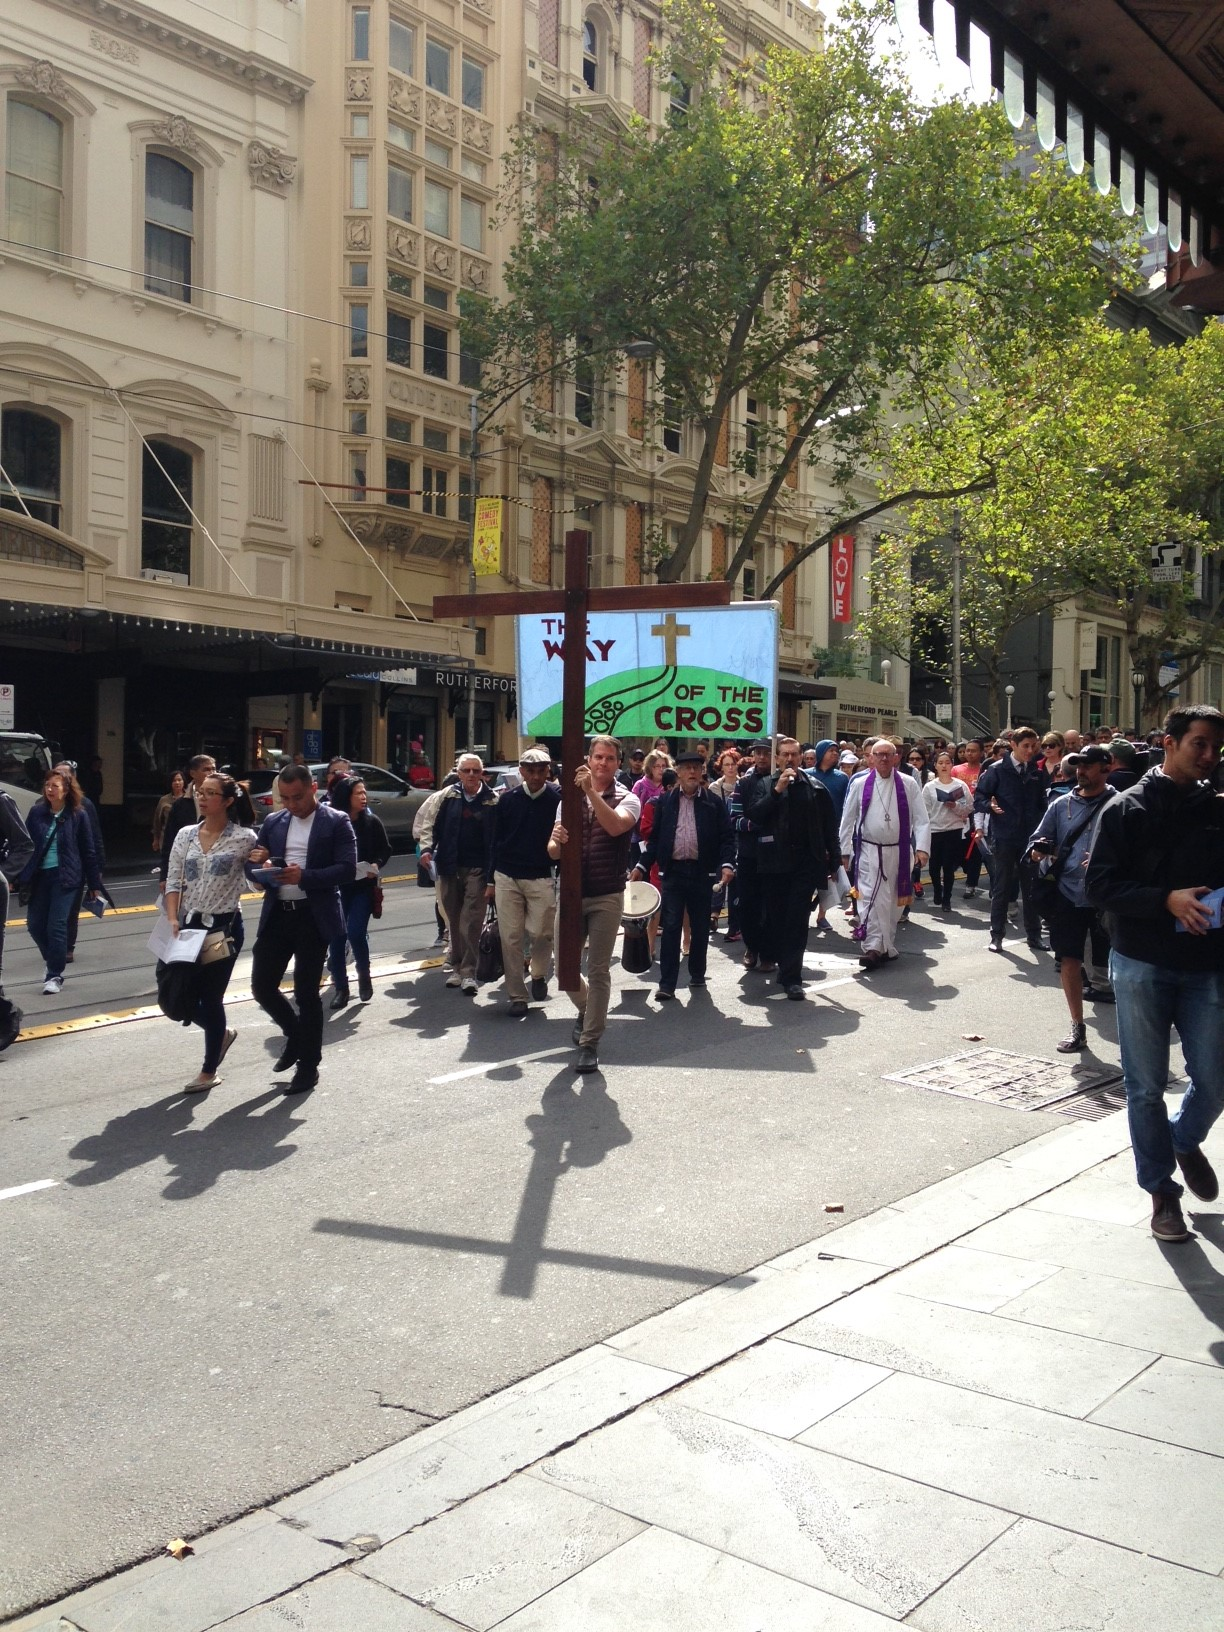 The Way of the Cross moves down Collins Street, the shadow of the cross preceding the cross itself and the banner